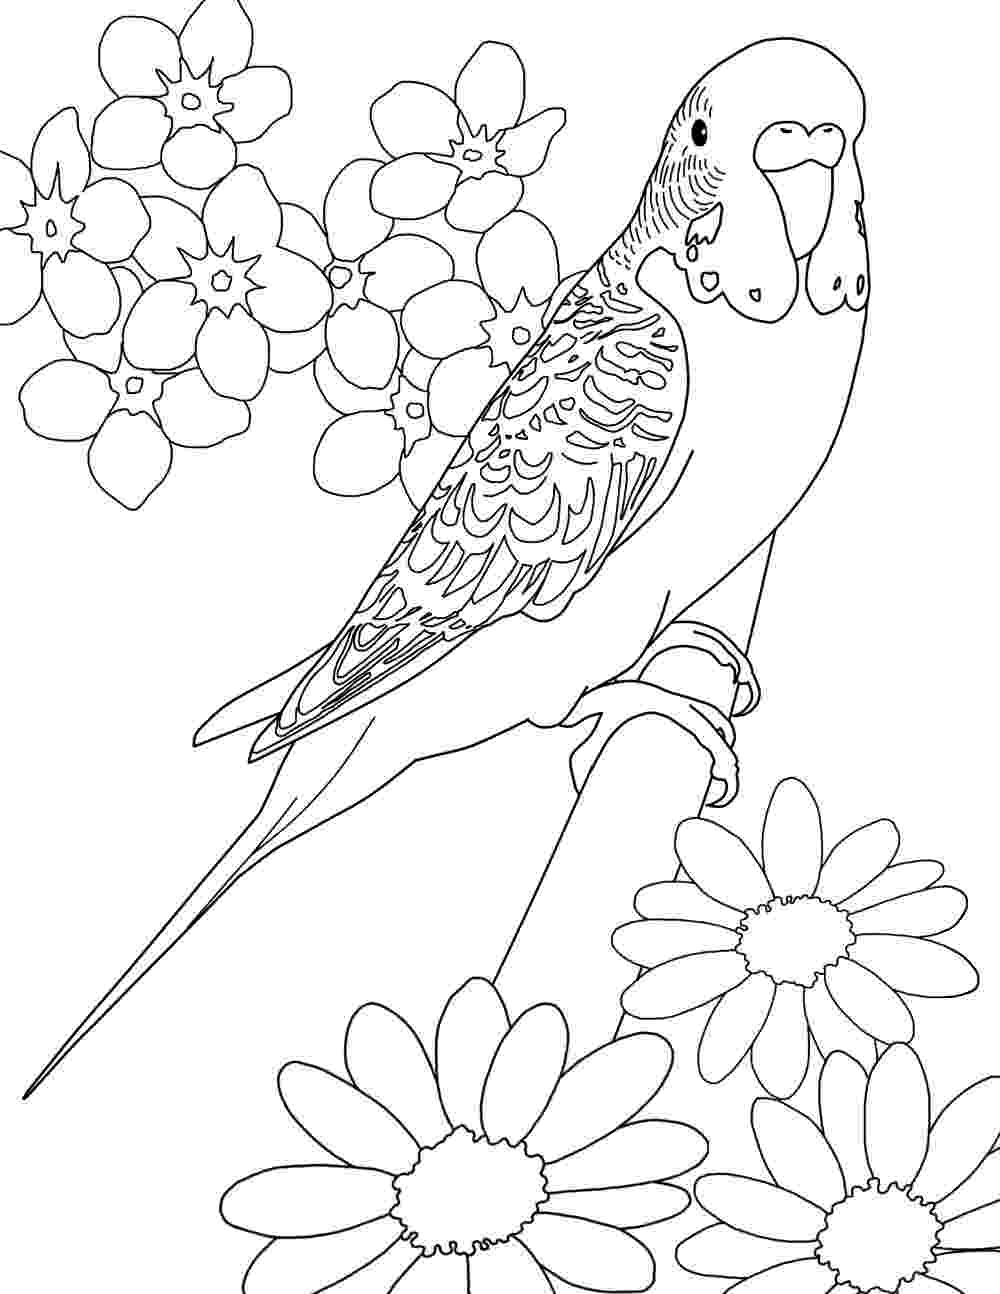 parakeet coloring pages parakeet coloring pages my parakeet clarabelle pages parakeet coloring